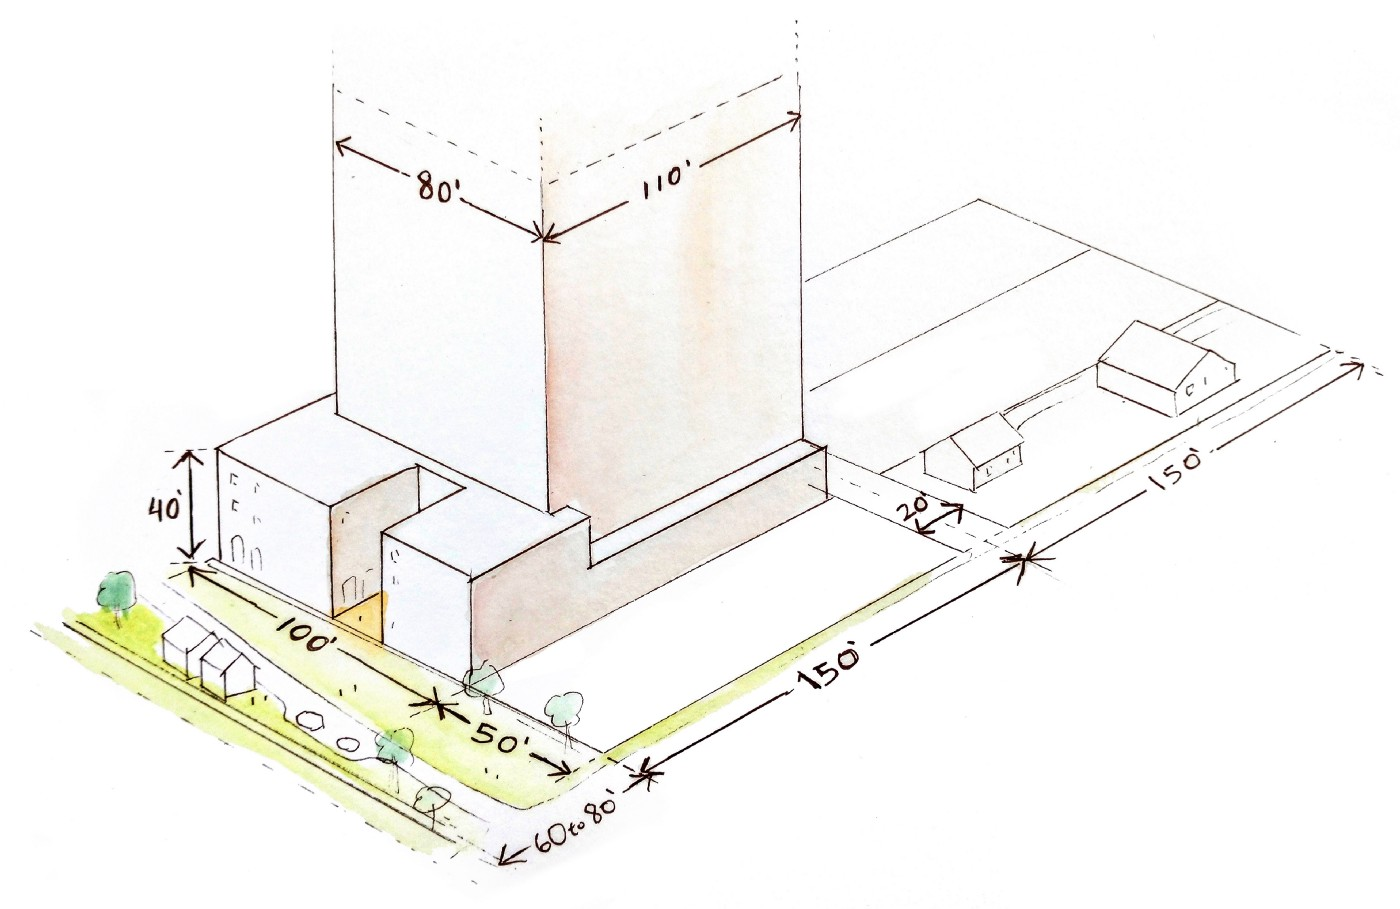 Isometric drawing of a 80'x110' wide tall building built at the rear of a 100x150 lot. There is a street in front with a landscaped plaza and tiny houses and driveway, and in the back a 20' alley